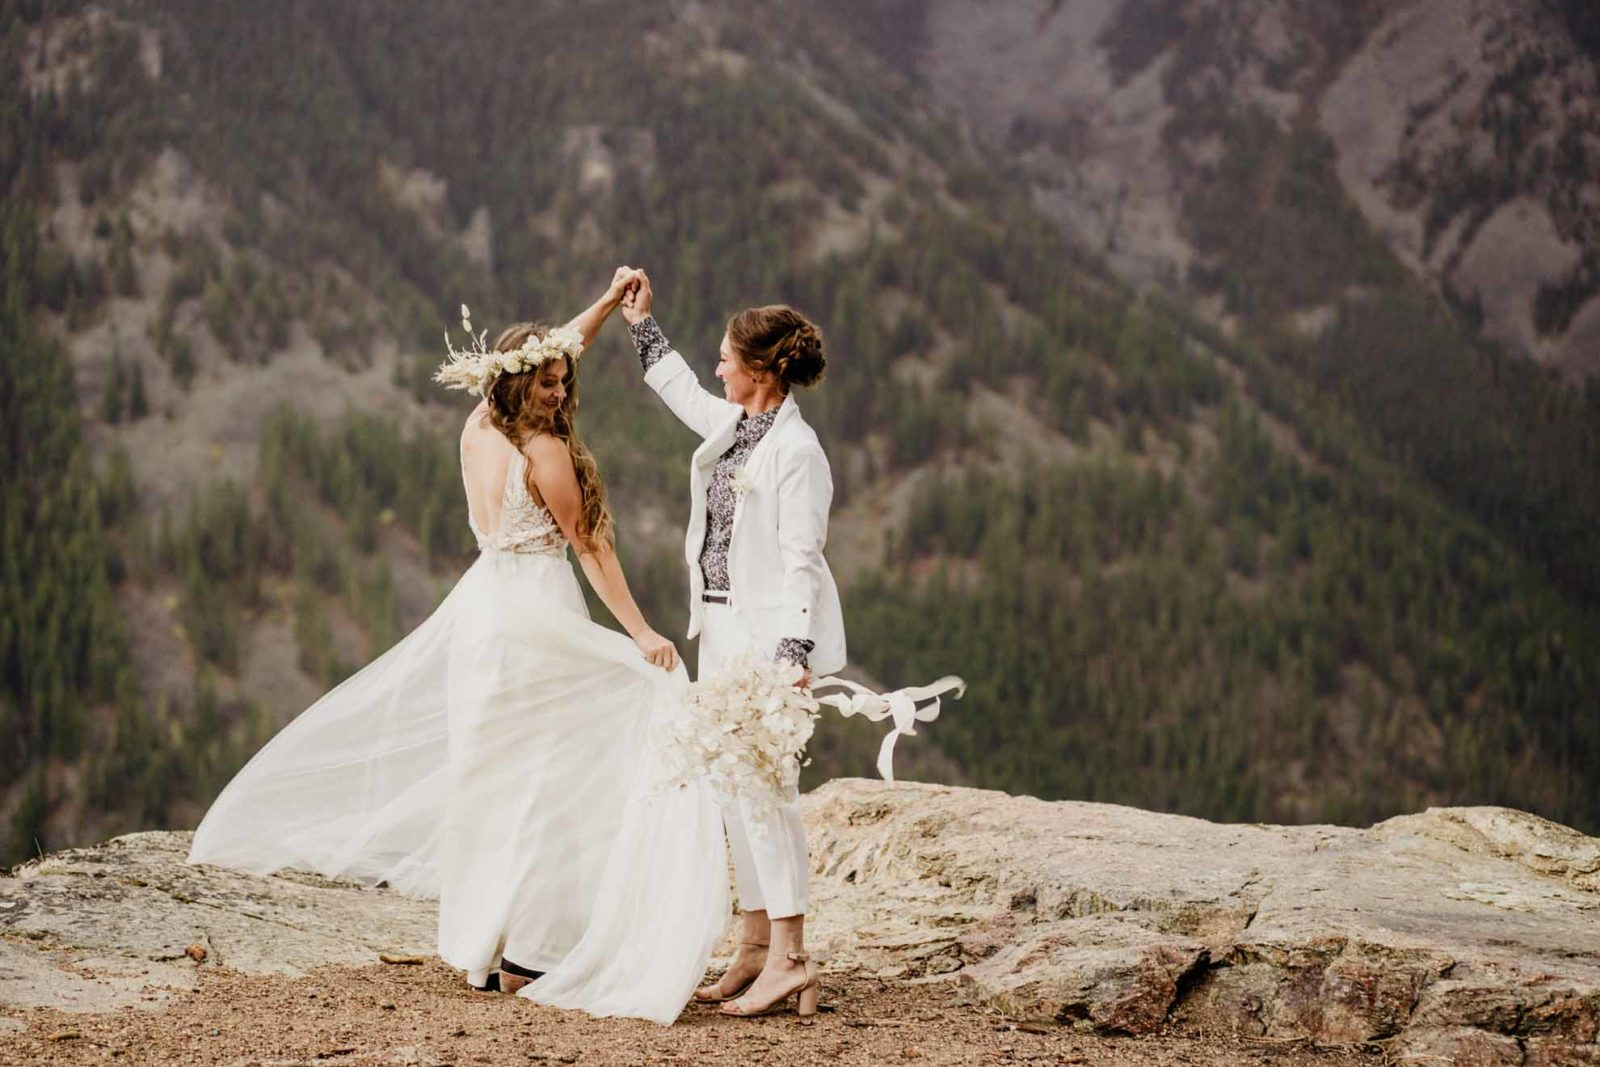 Honeybee Weddings Missoula, Montana lesbian two brides suprise proposal engagement photography lgbtq+ wedding magazine Dancing With Her (1)